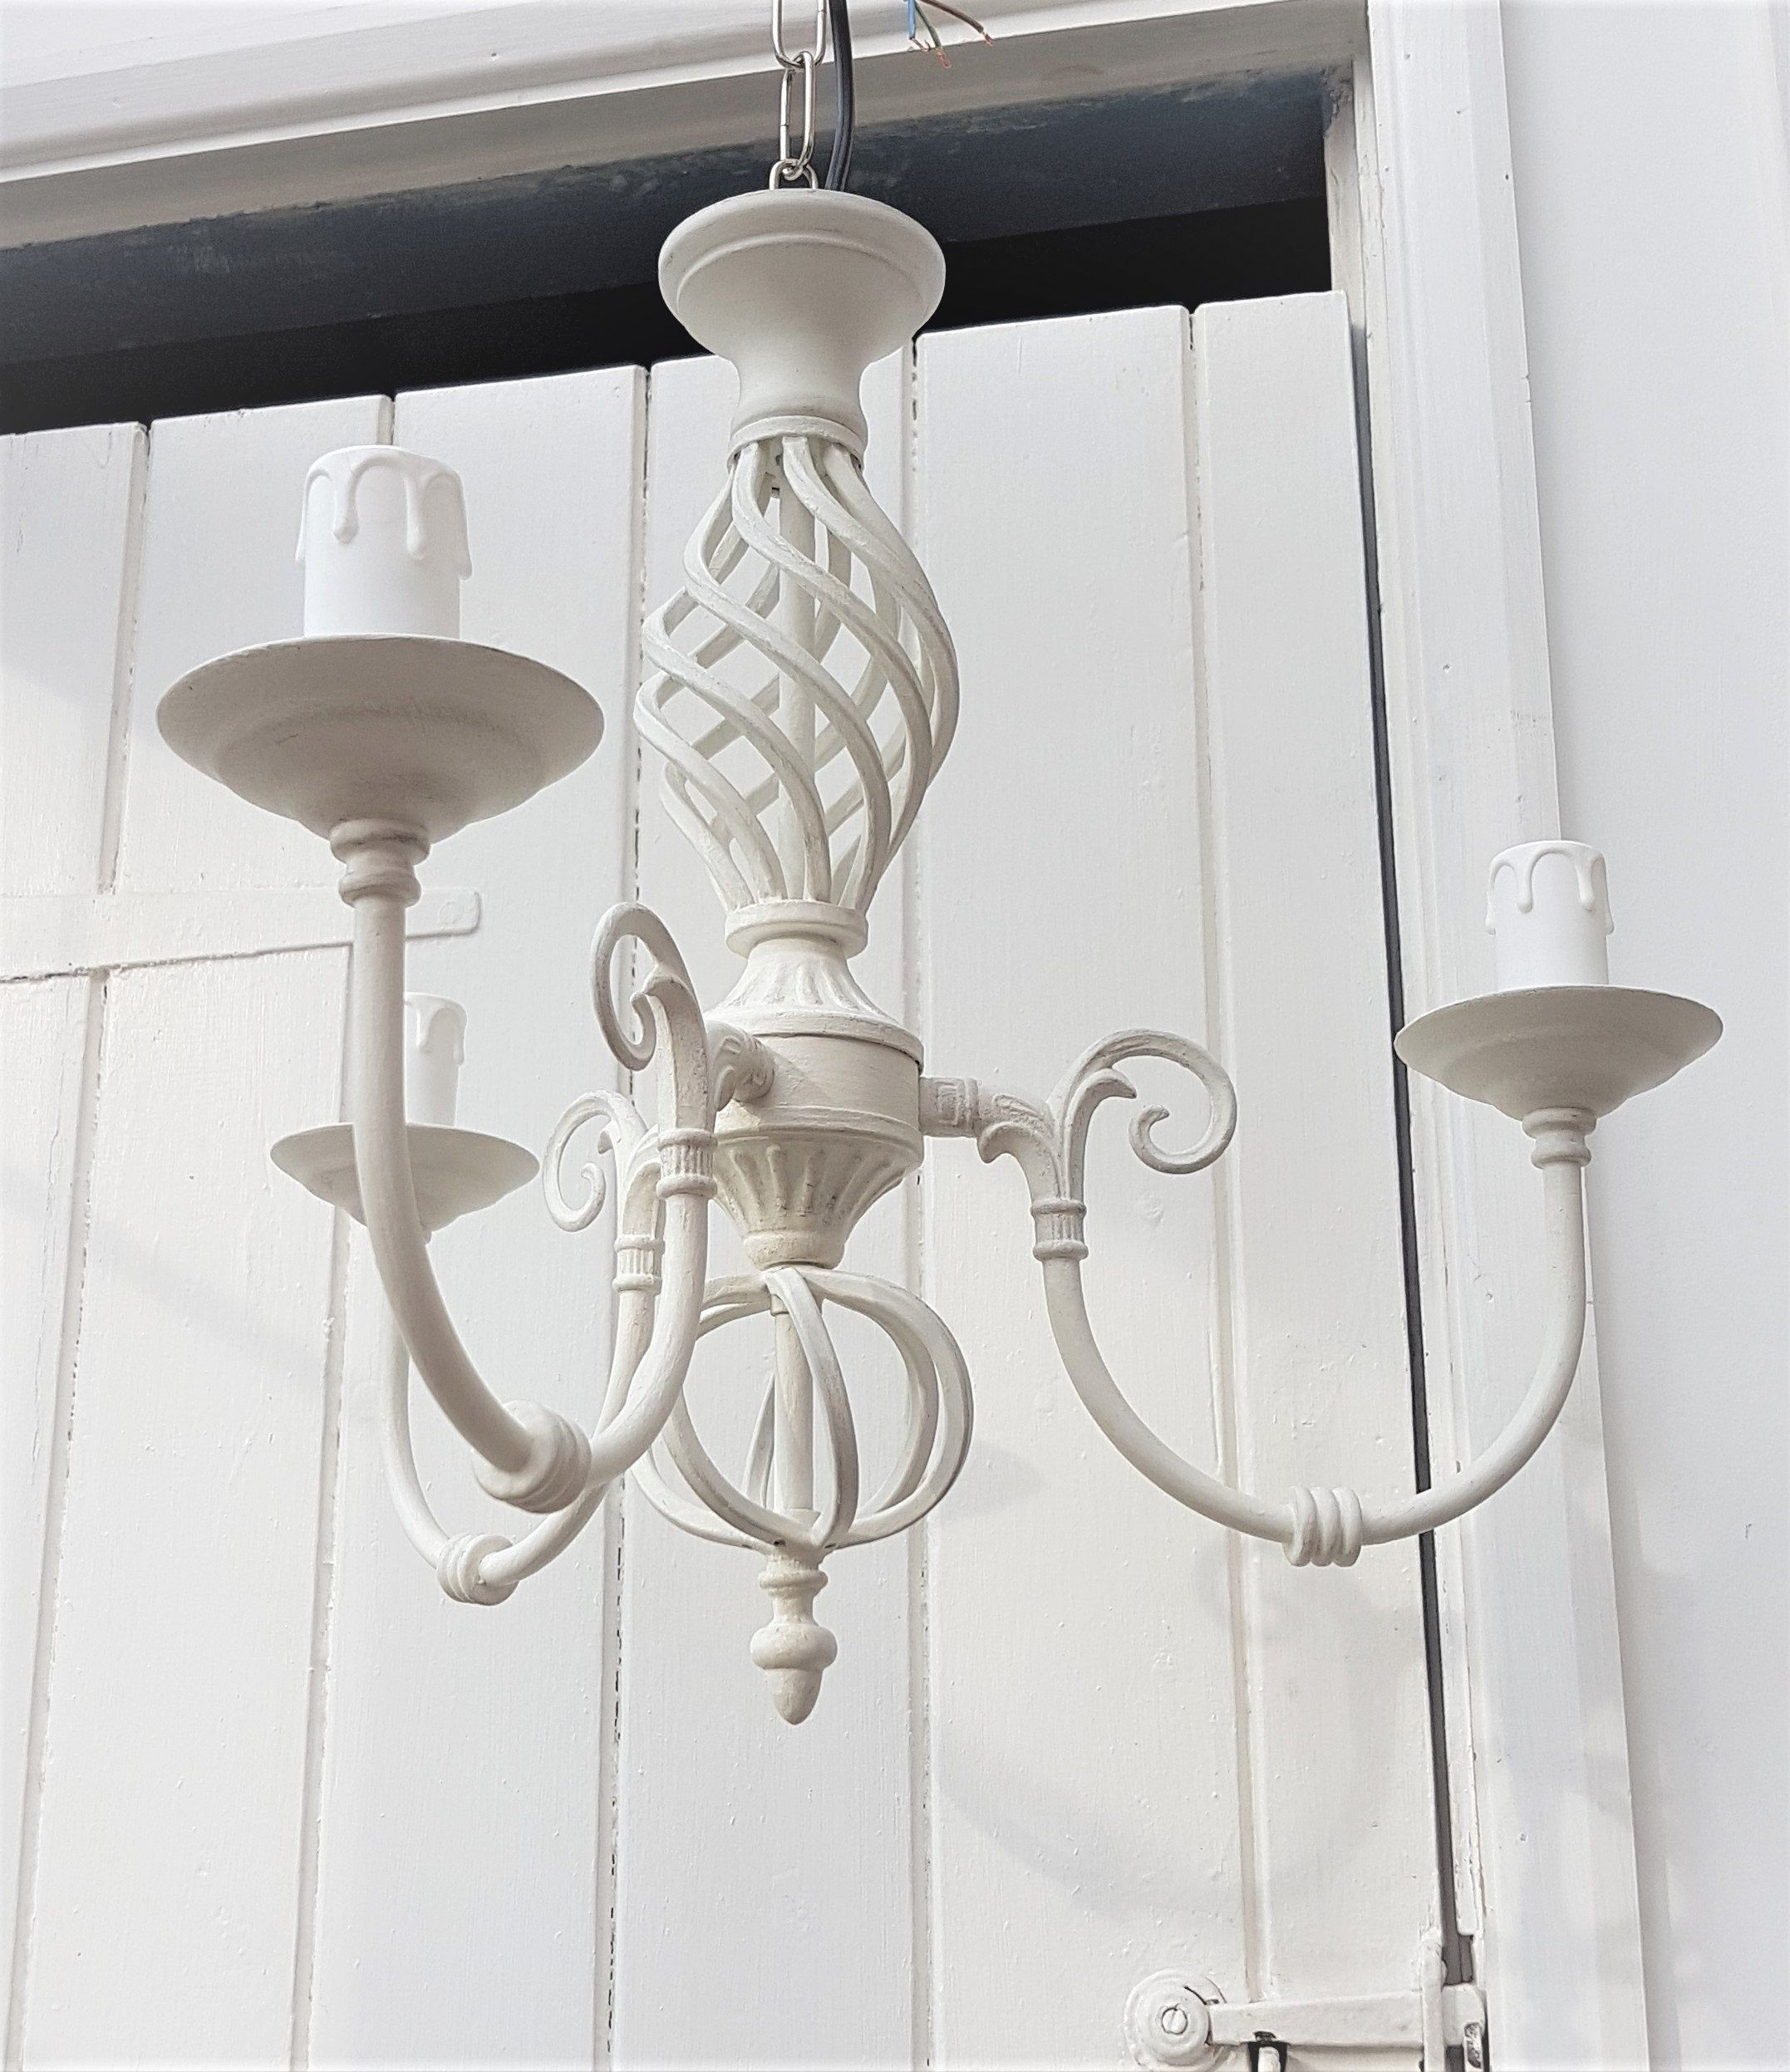 3 Light Uk Usa Or Europe Fitting Vintage Pendant Lighting Fixture Rewired And Upcycled In O Vintage Pendant Lighting Iron Pendant Light Pendant Light Fixtures